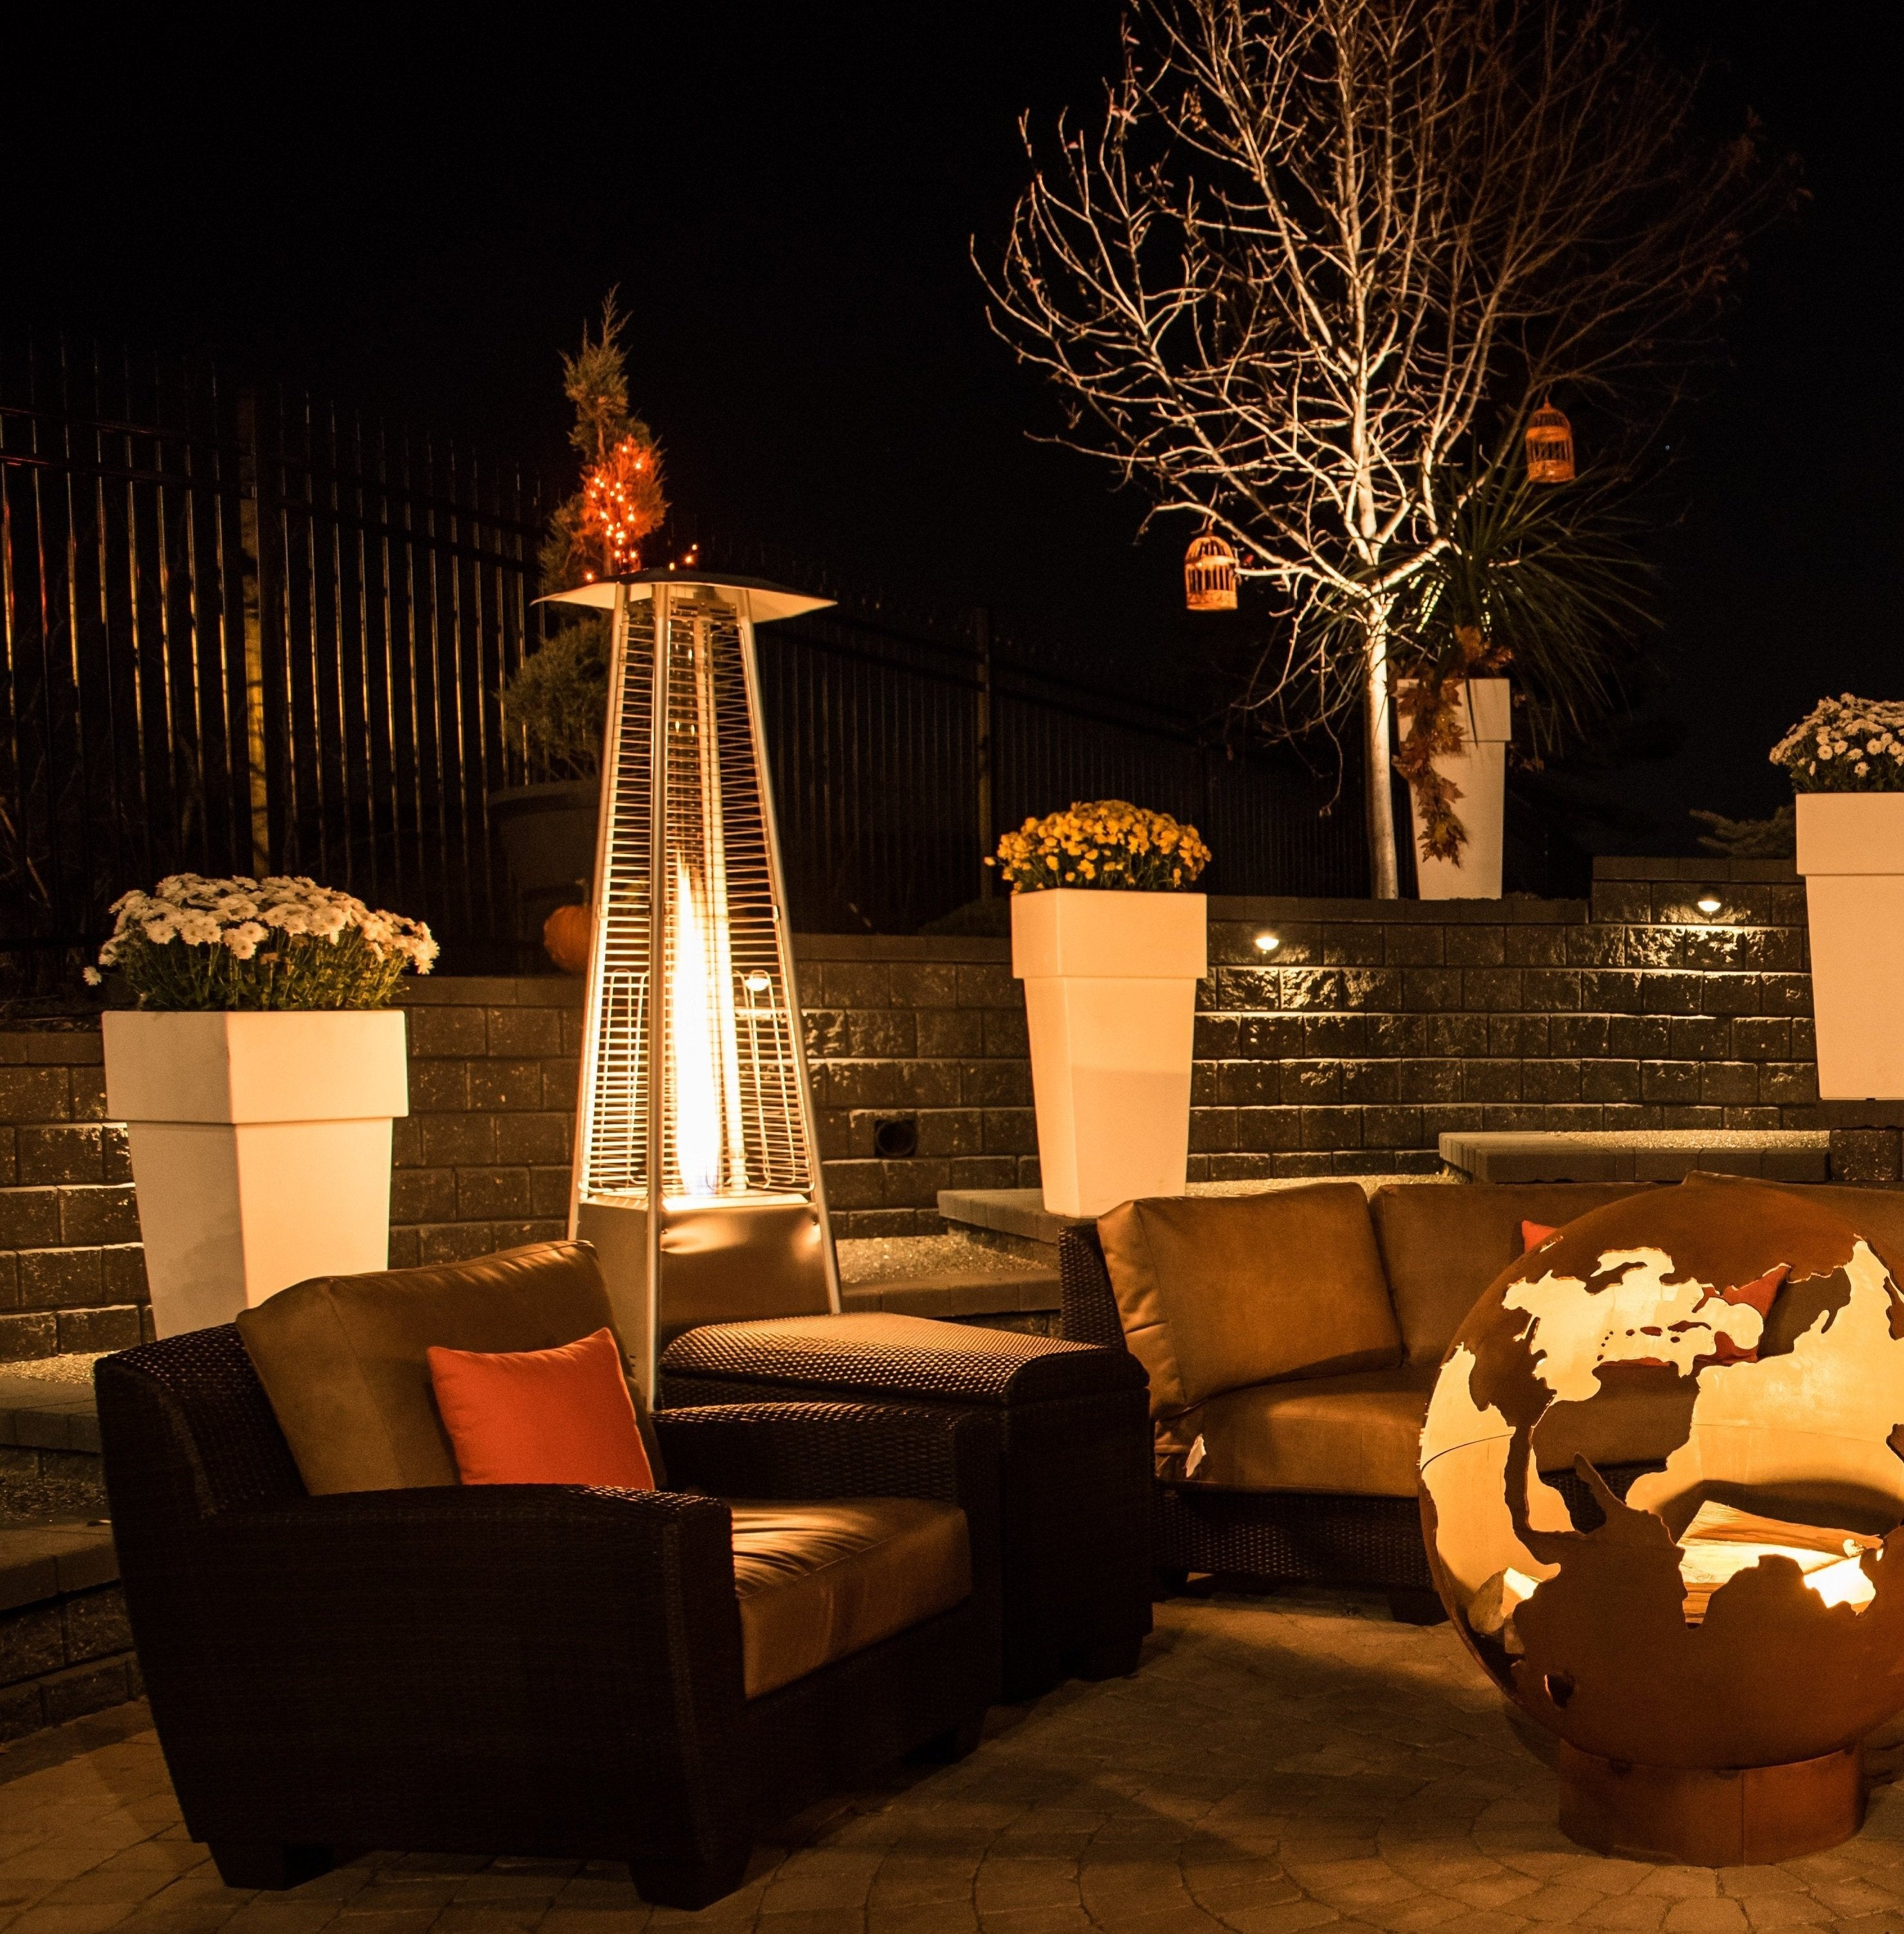 Patio furniture and heaters in backyard